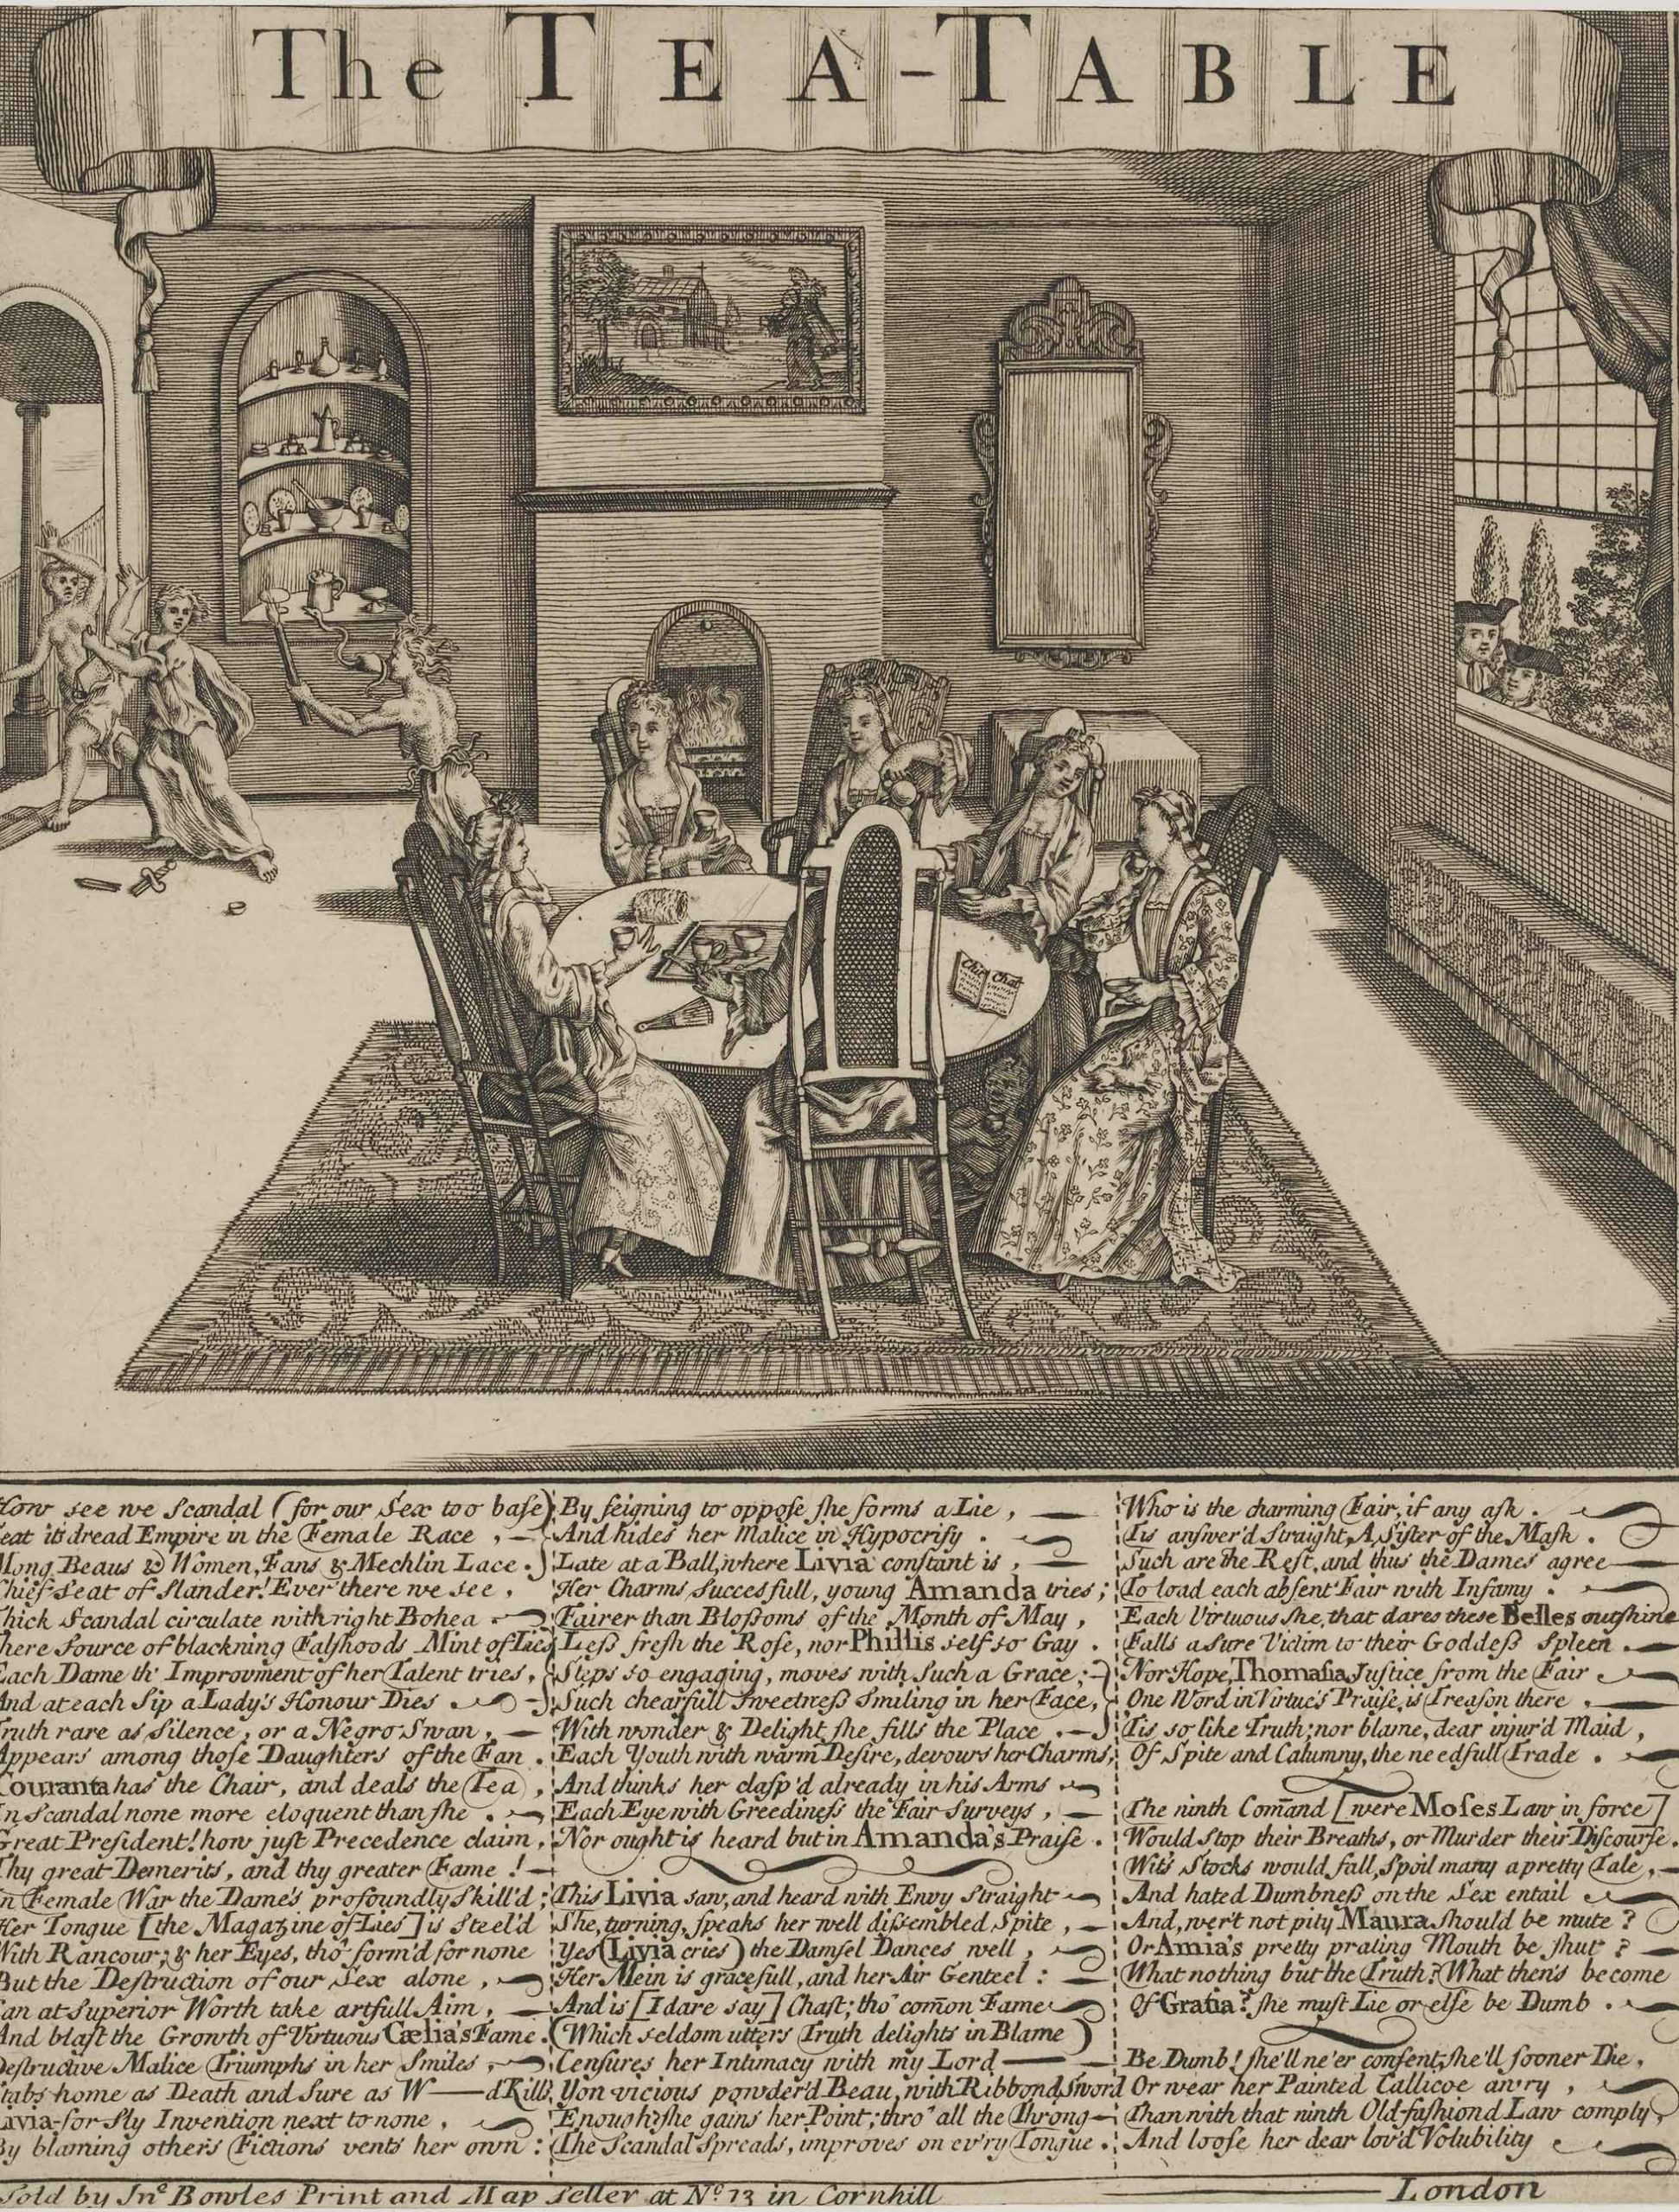 Etching showing a group of women sitting around a table drinking tea. There are three columns of satirical verse below the picture.